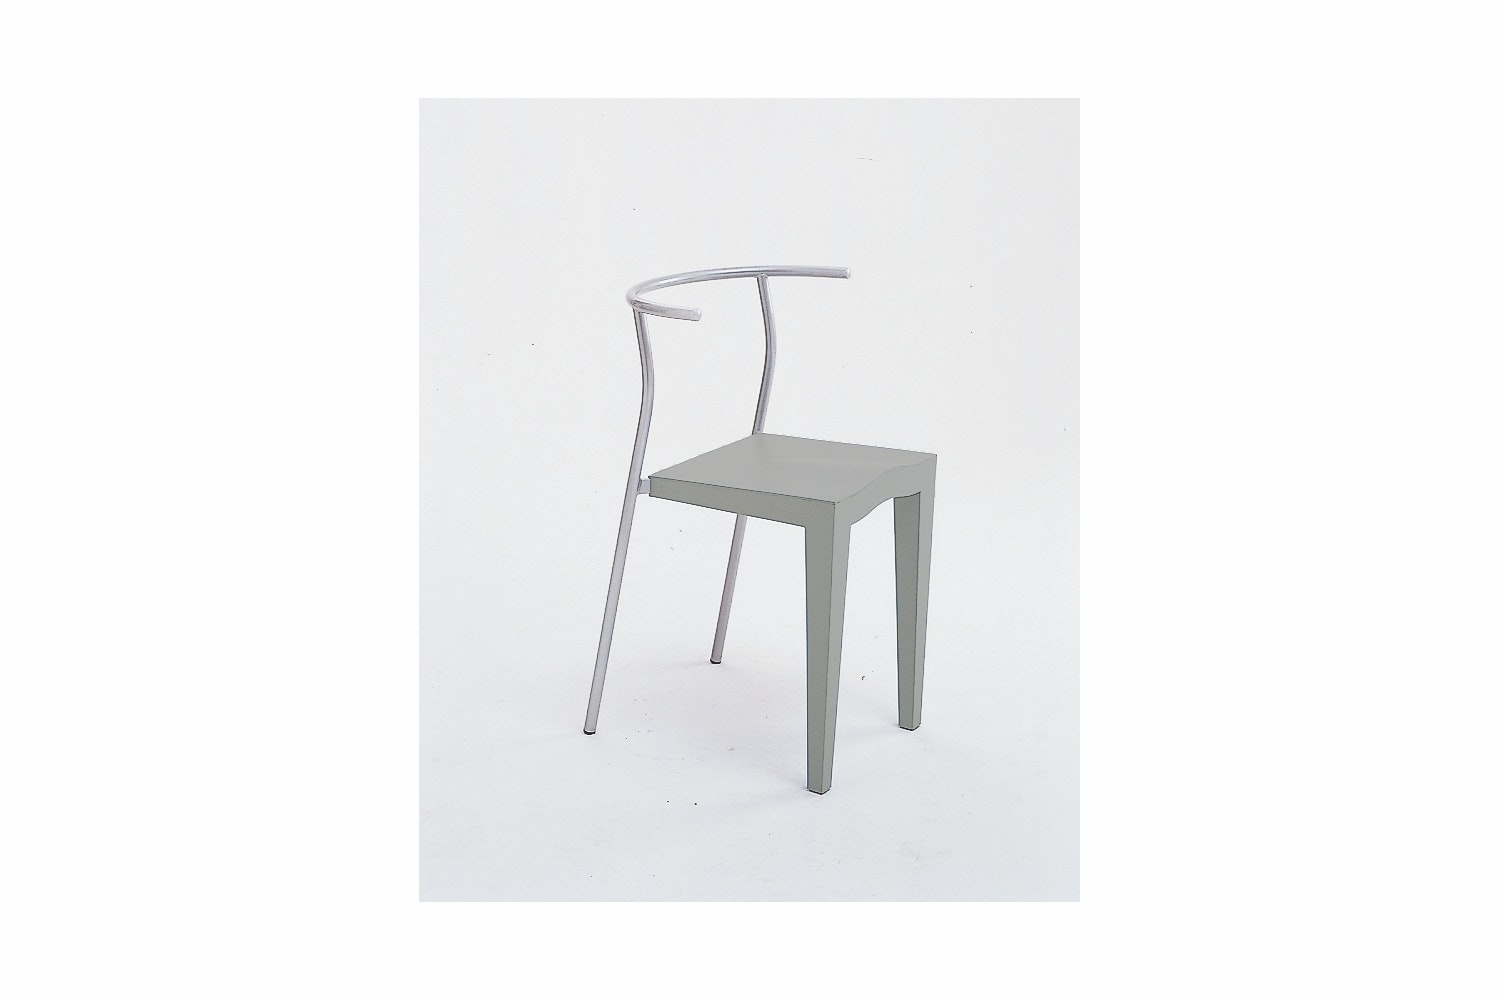 Dr. Glob Chair by Philippe Starck for Kartell